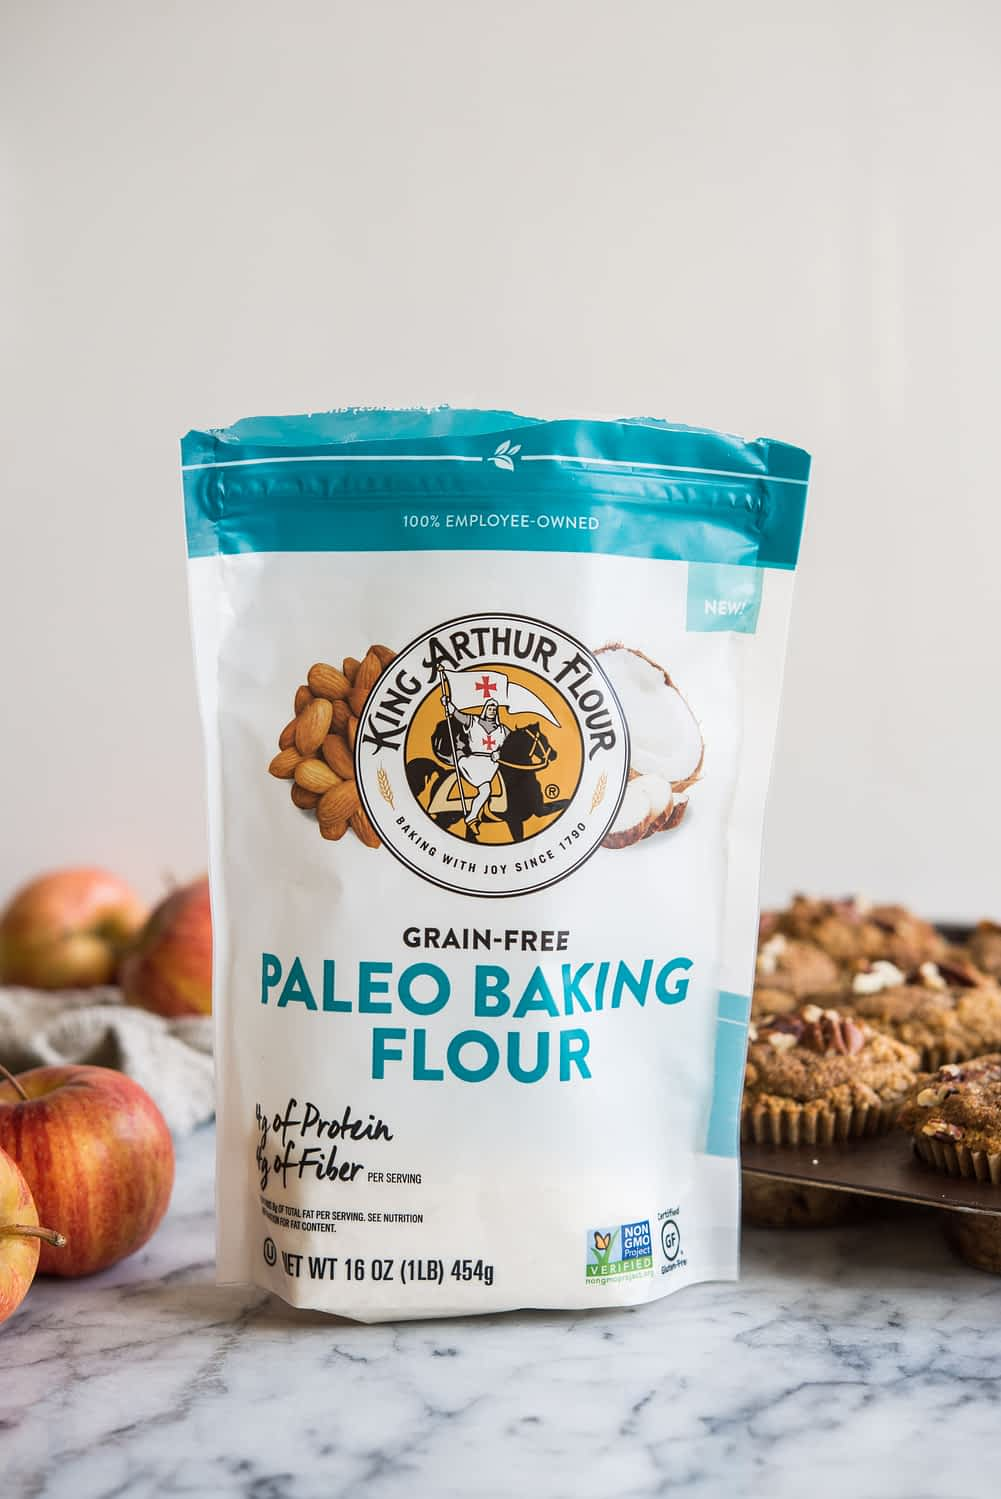 a bag of king arthur paleo baking flour on a marble board with muffins and apples in the background